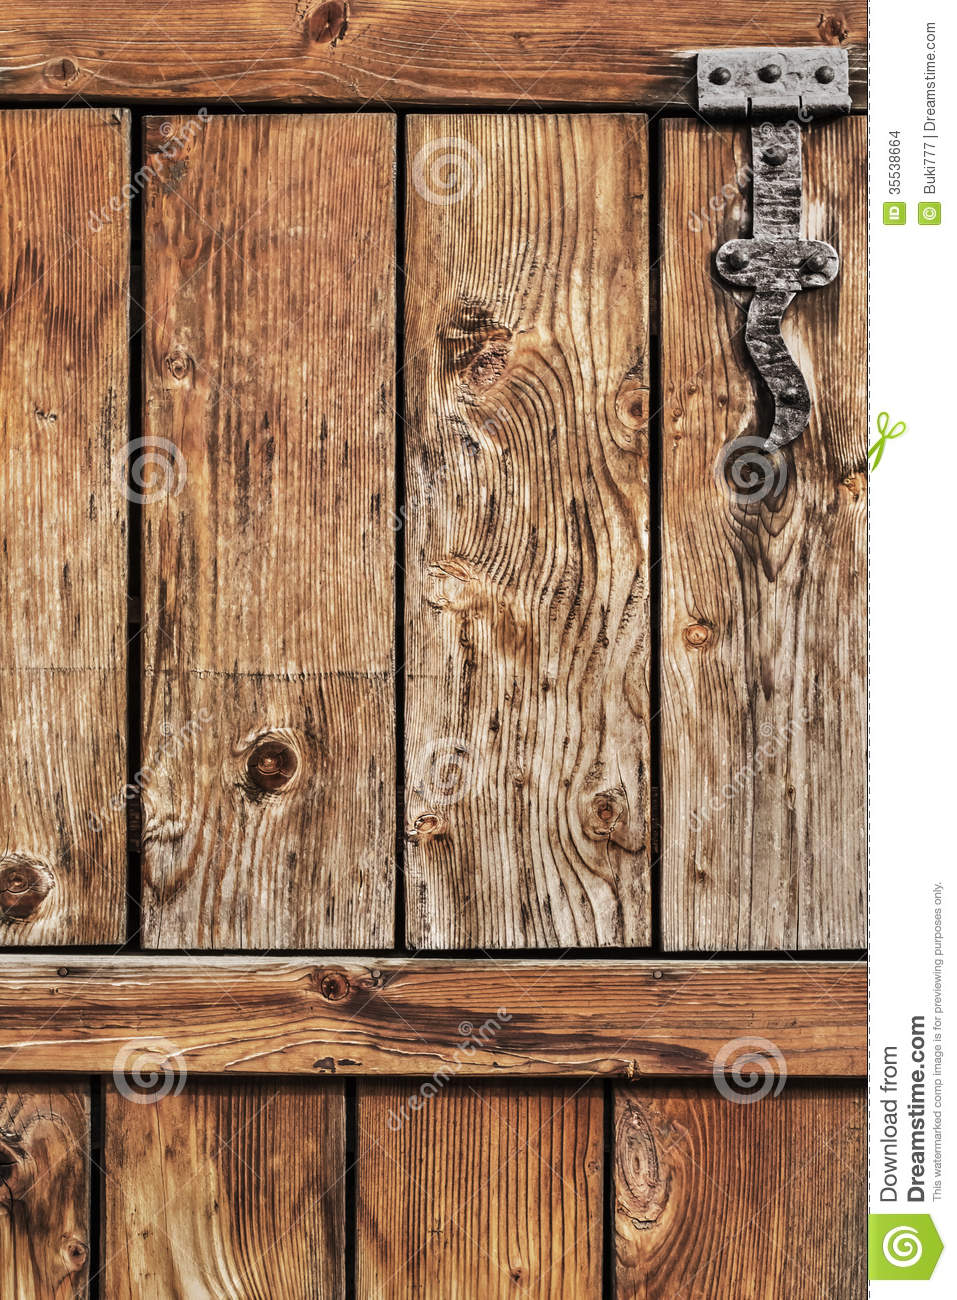 Antique Rustic Pine Wood Barn Door Detail Stock Photo